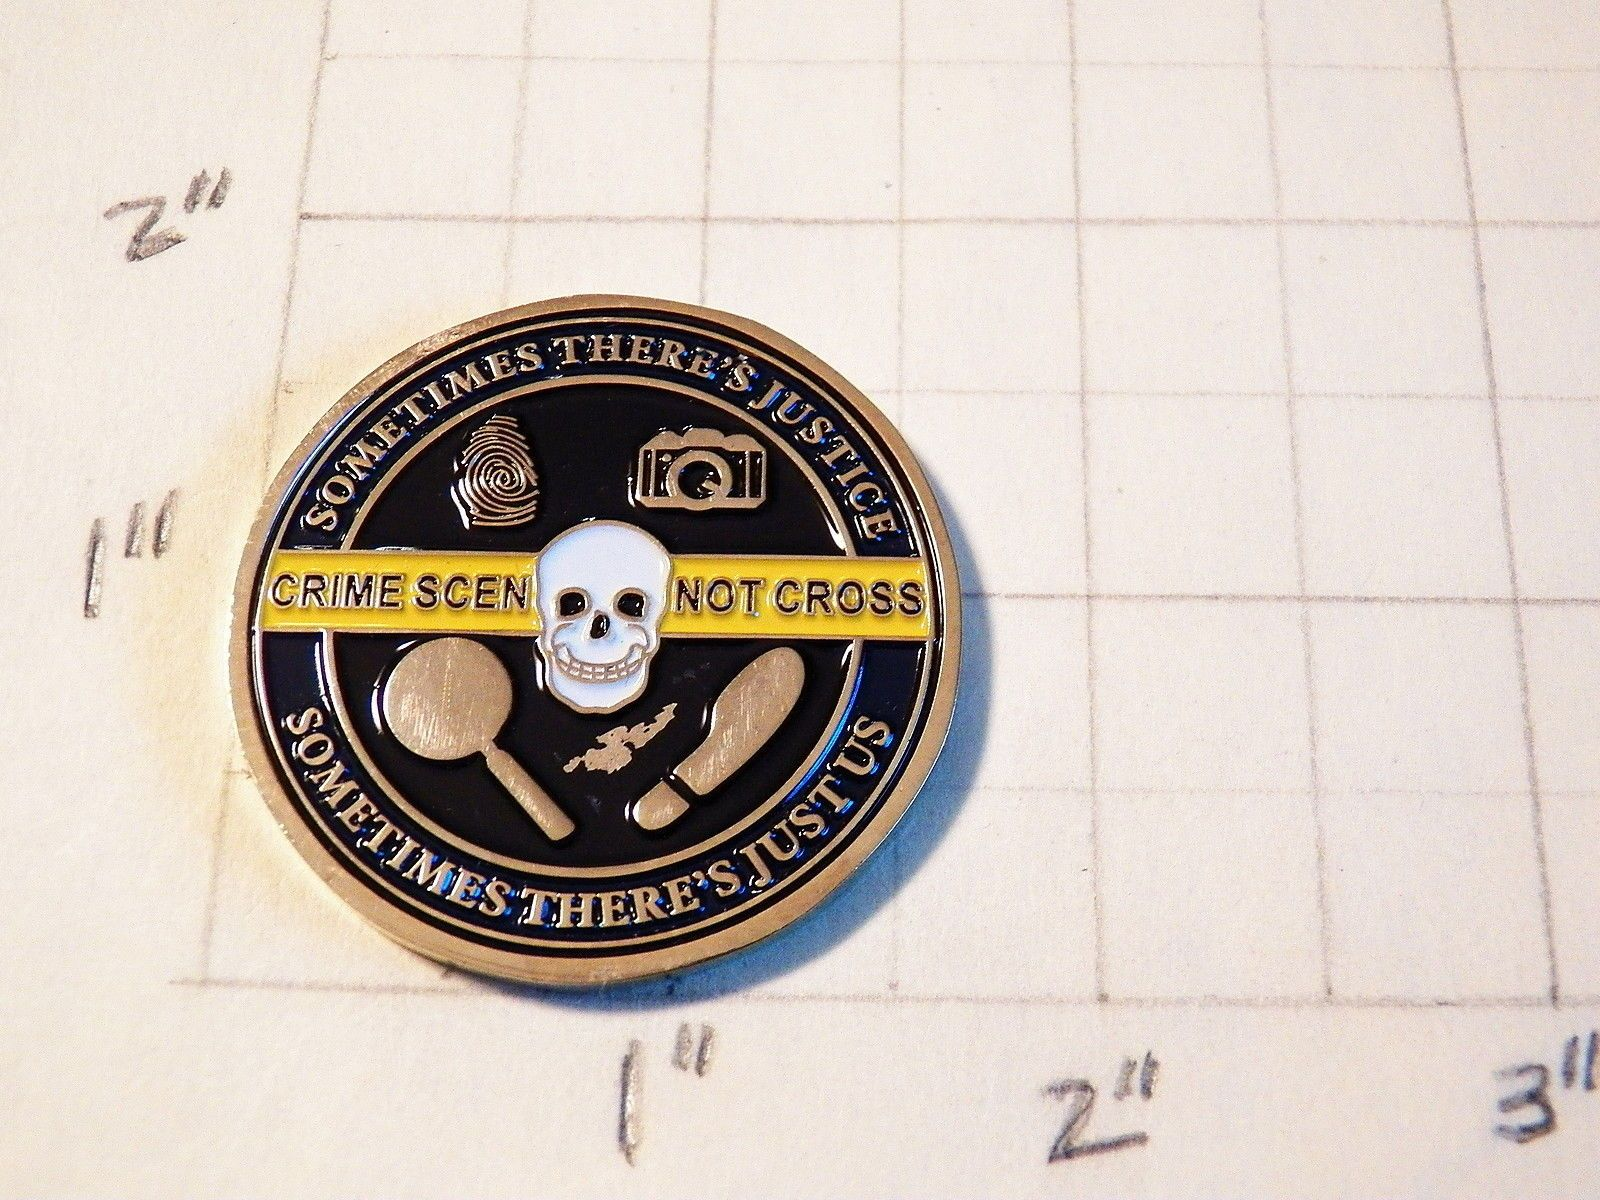 Wichita Falls Tx Police Dept Criminal Investigations Section Challenge Coin Collectibles Militaria Cur Challenge Coins Police Challenge Coins Police Dept